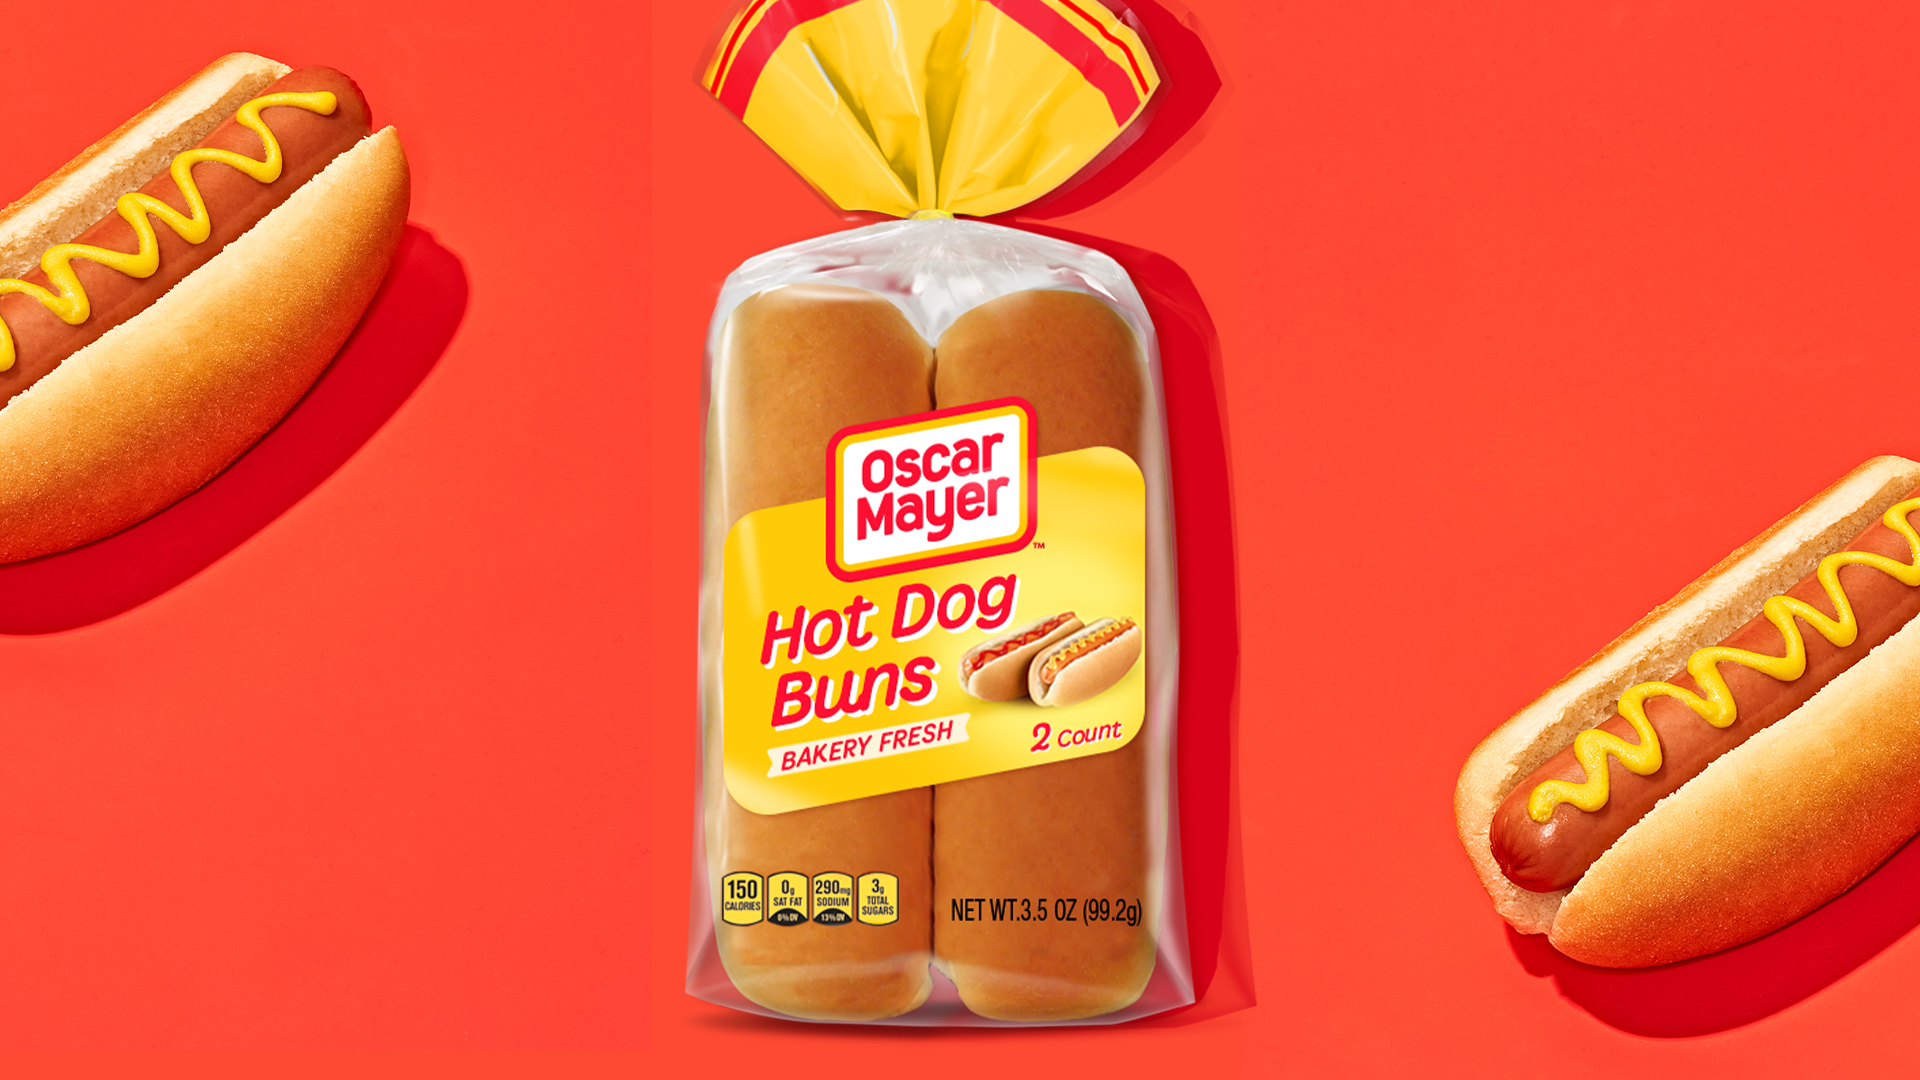 Oscar Mayer Offers to Solve the Age-Old Problem of Mismatched Hot Dogs and Buns